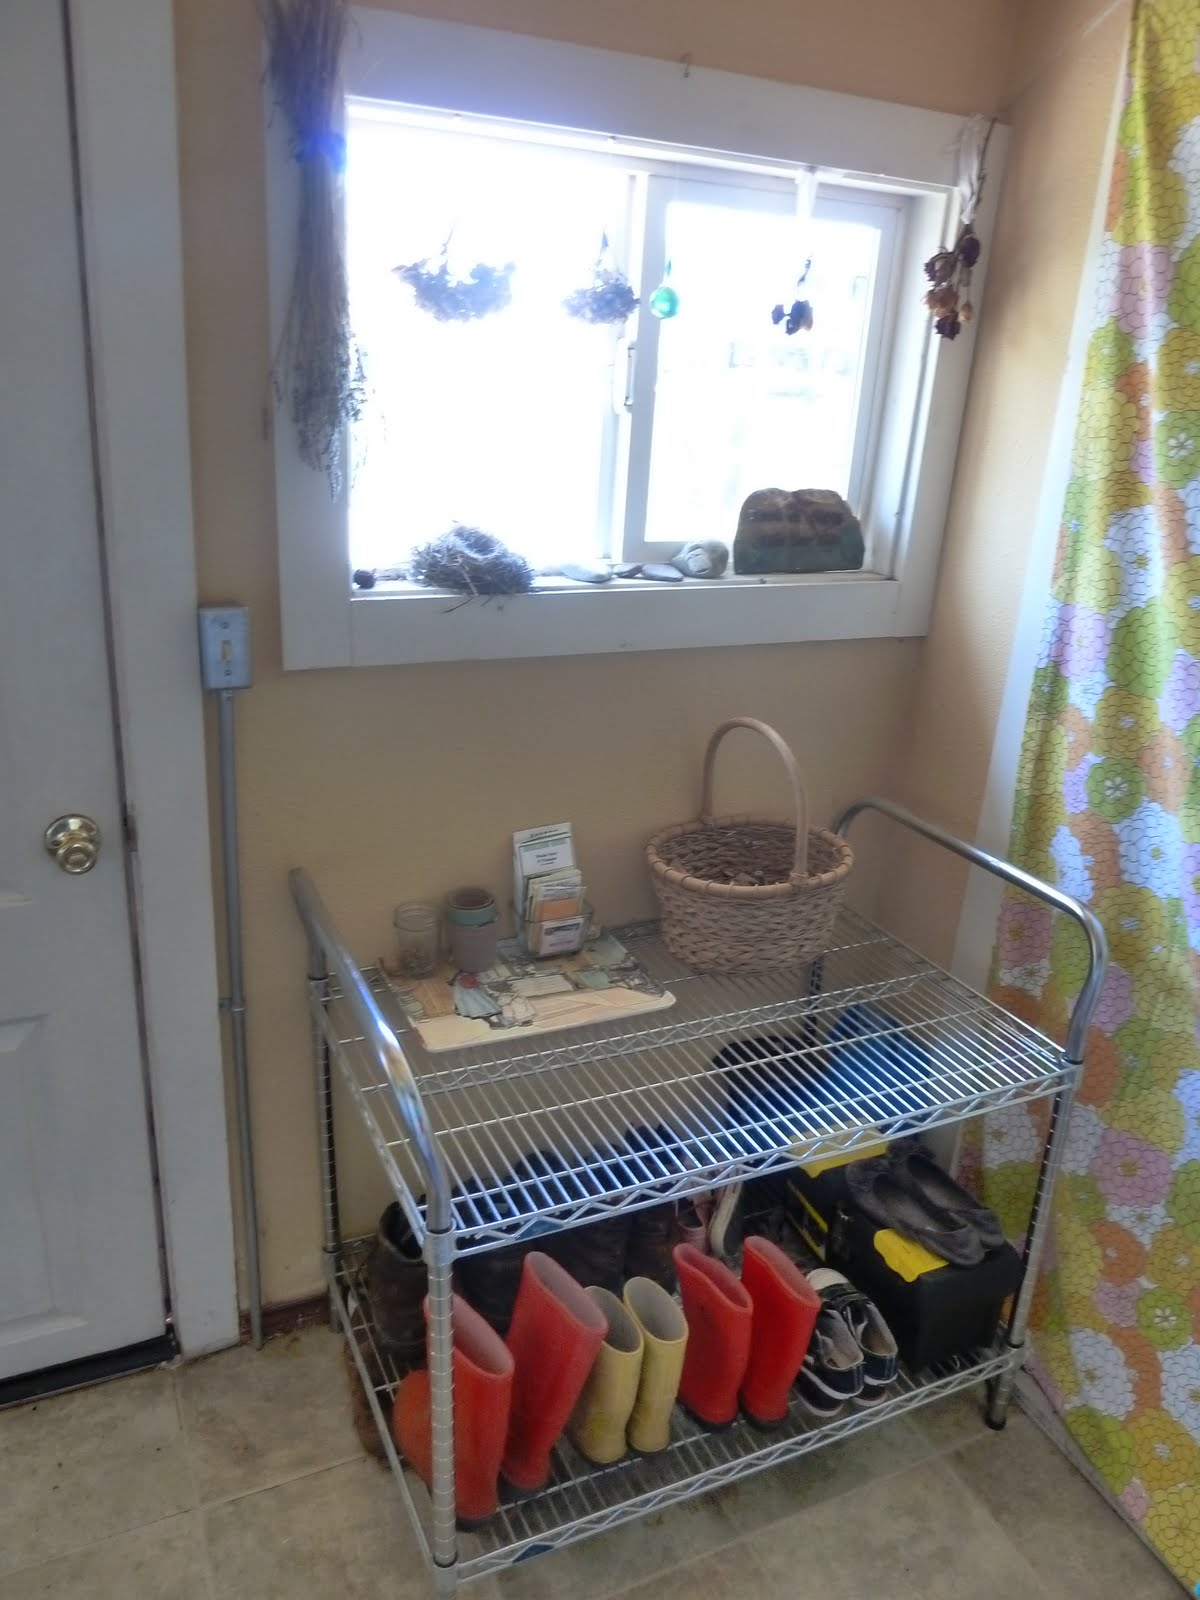 Urban Homestead Diaries: Mud Room Organization